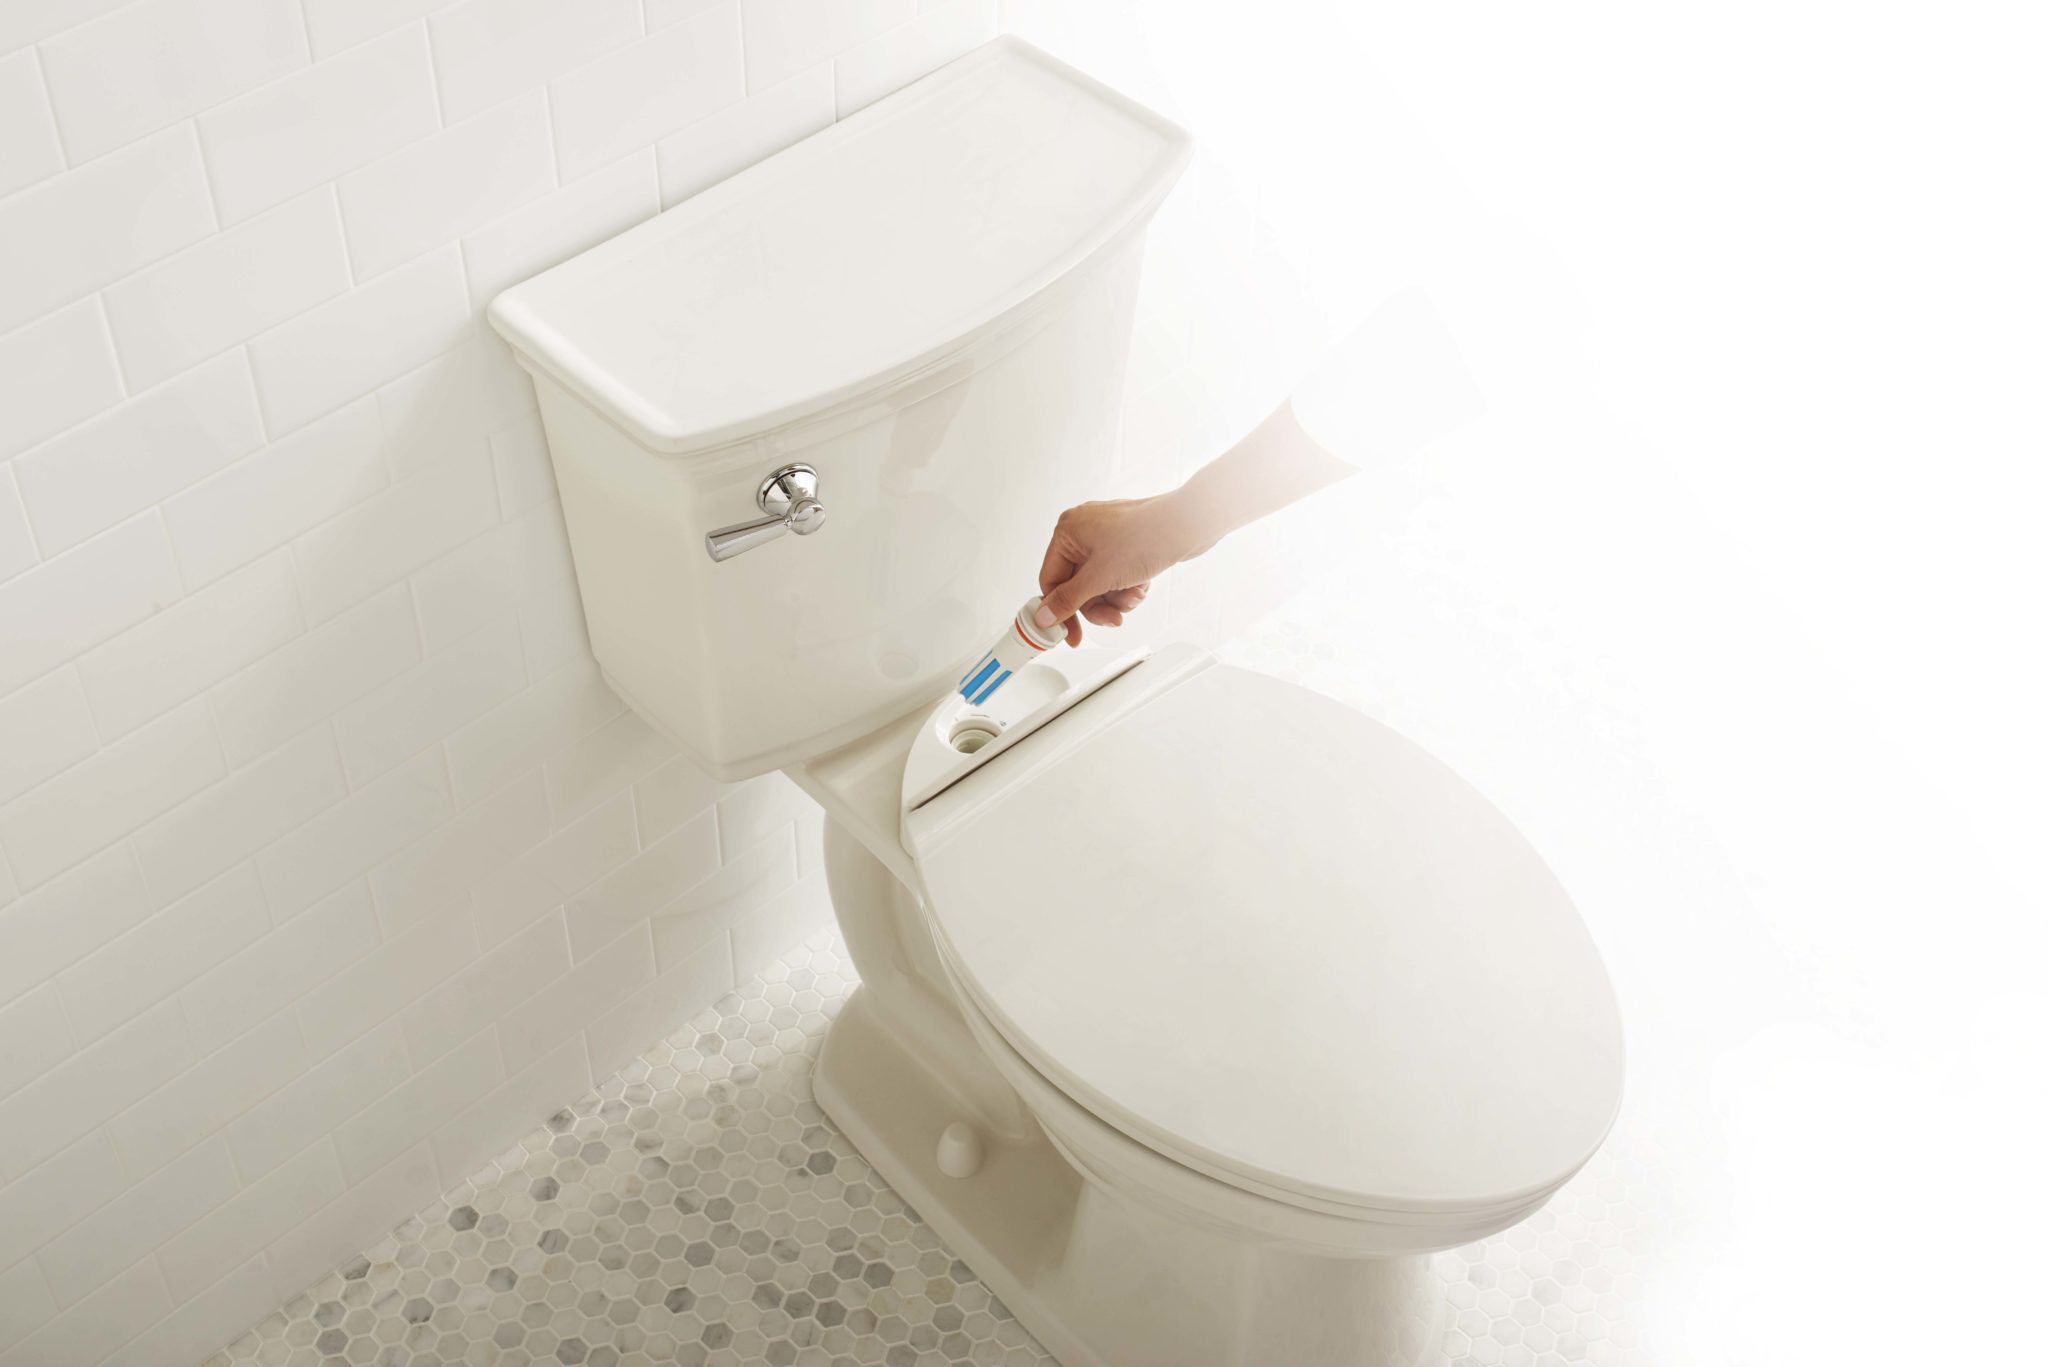 no touch flush american standard toilet manually